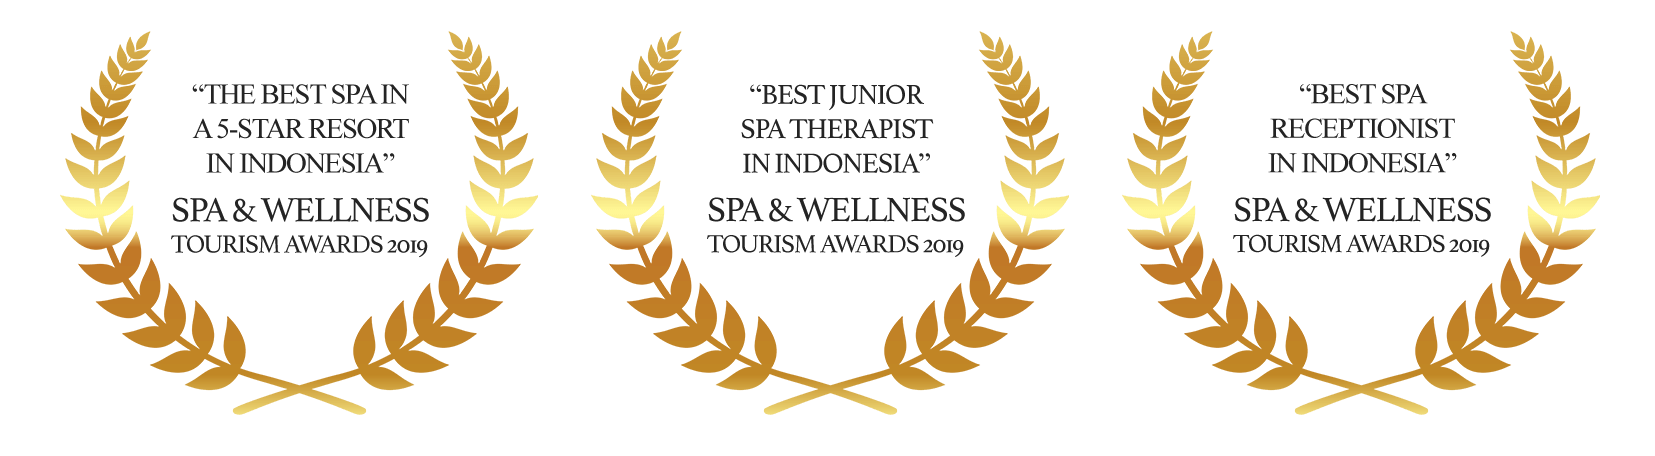 https://seminyak.hotelindigo.com/uploads/Awards/Best Spa_small.png